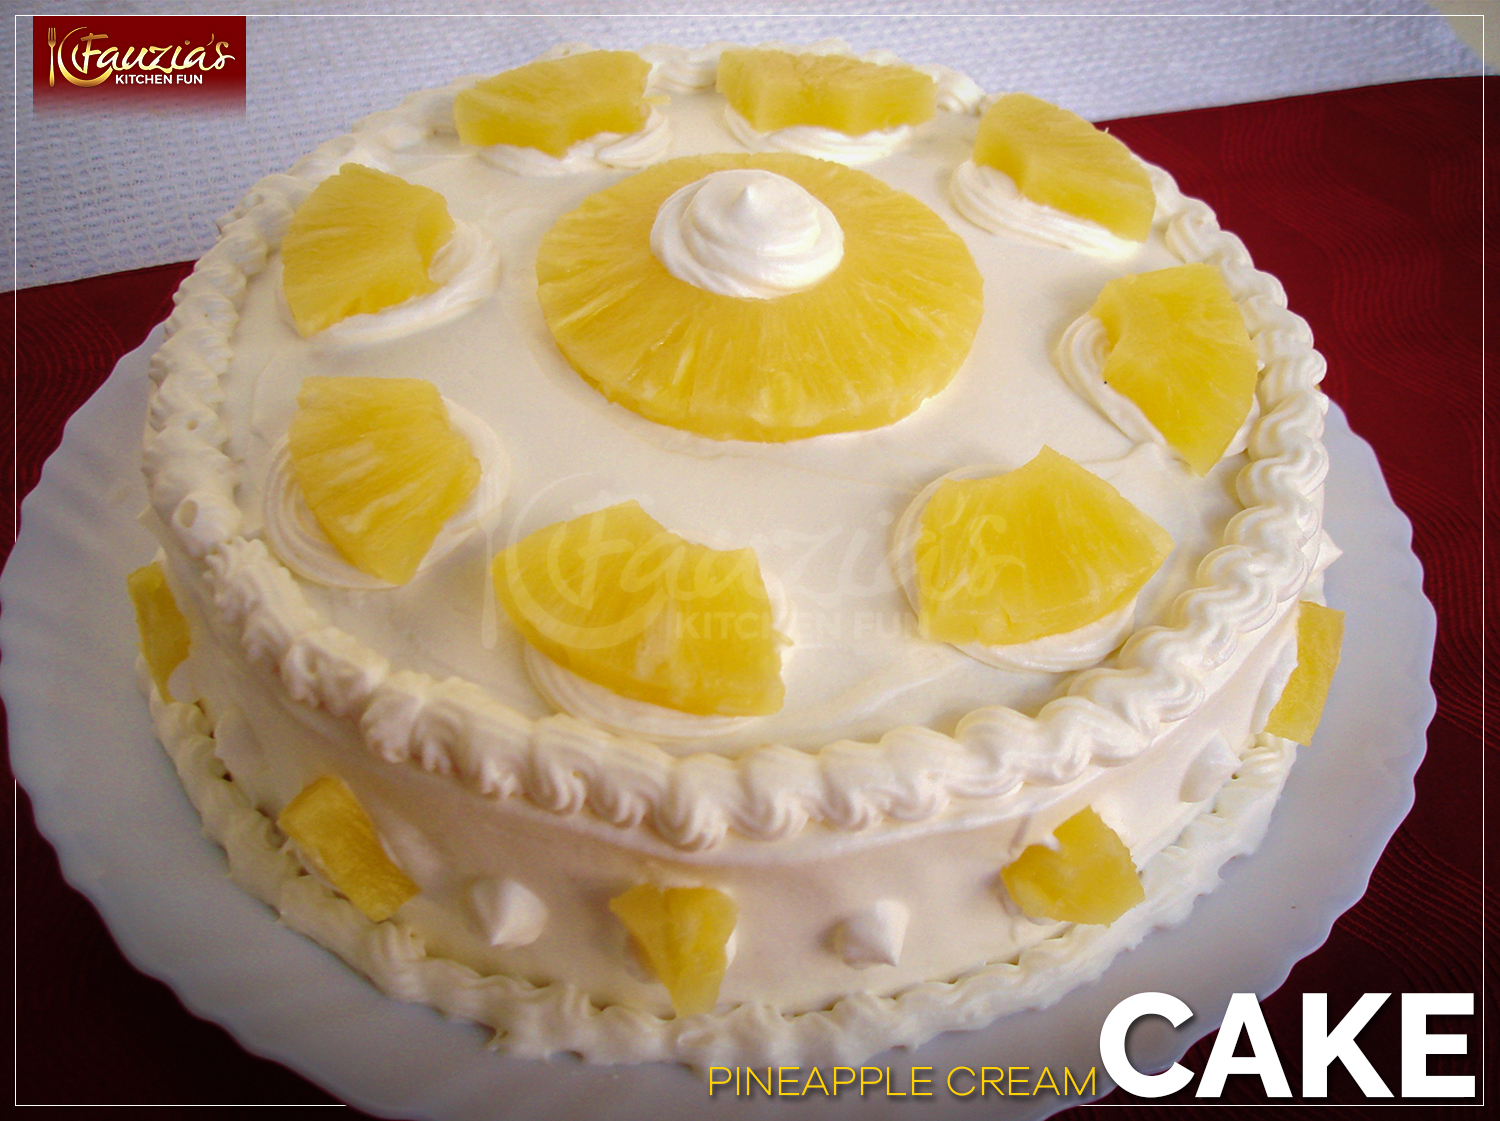 Pineapple Cream Cake Fauzia S Kitchen Fun